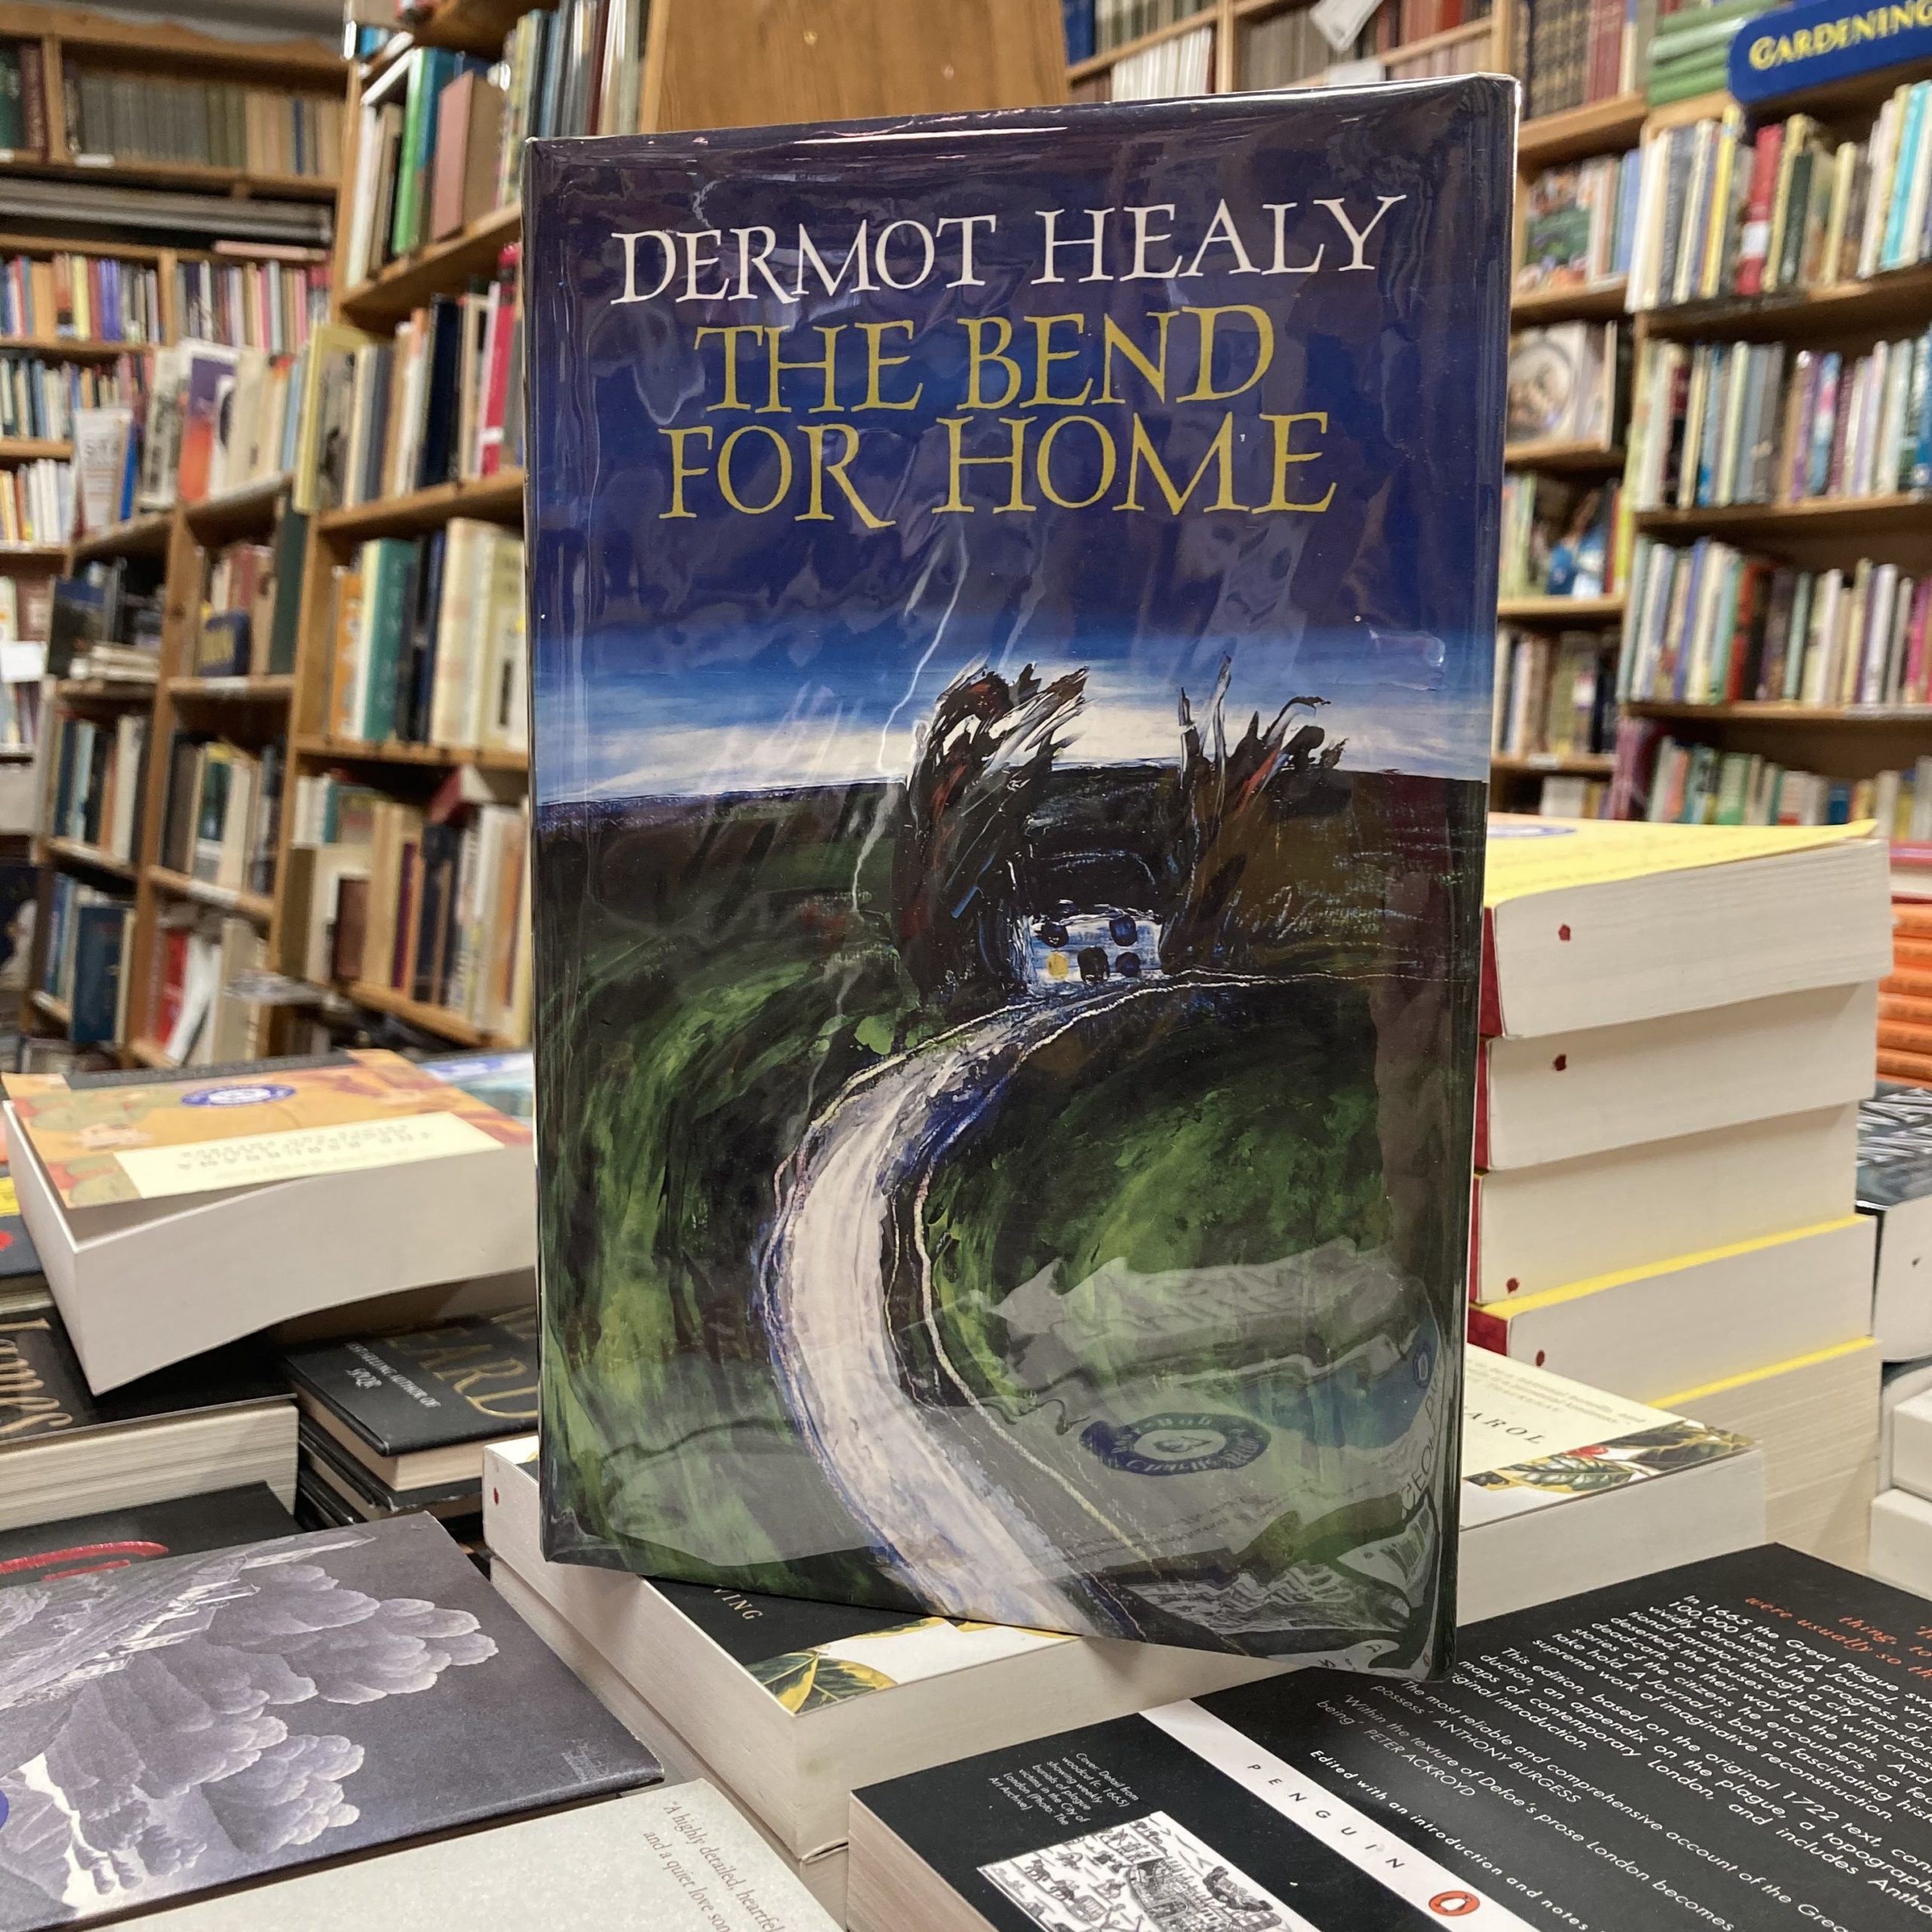 The Bend for Home | Dermot Healy | Charlie Byrne's